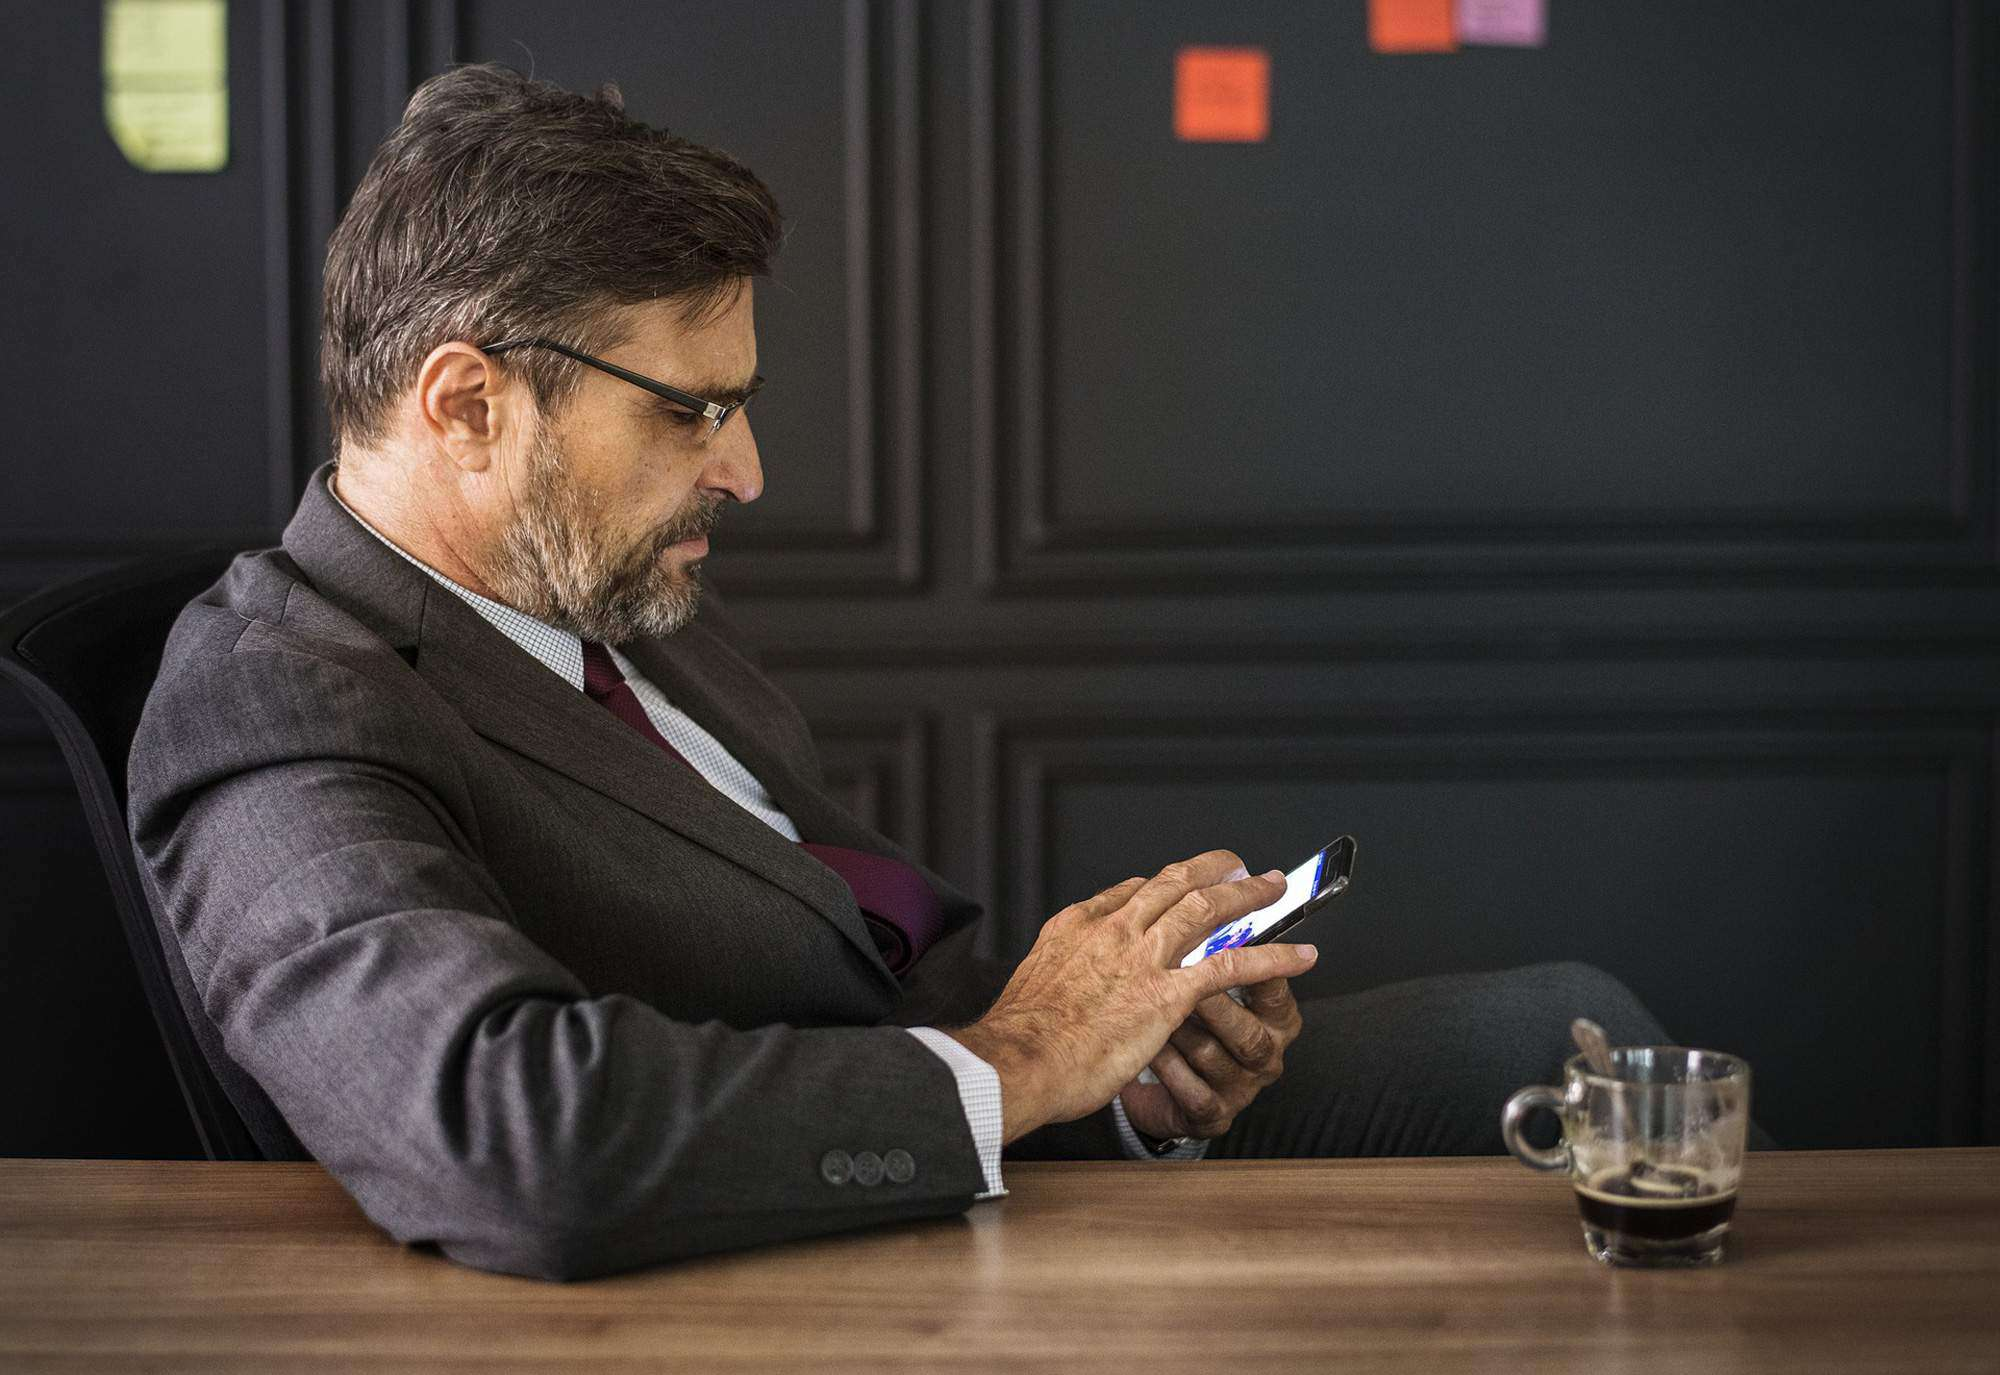 How a live chat app can benefit your real estate business